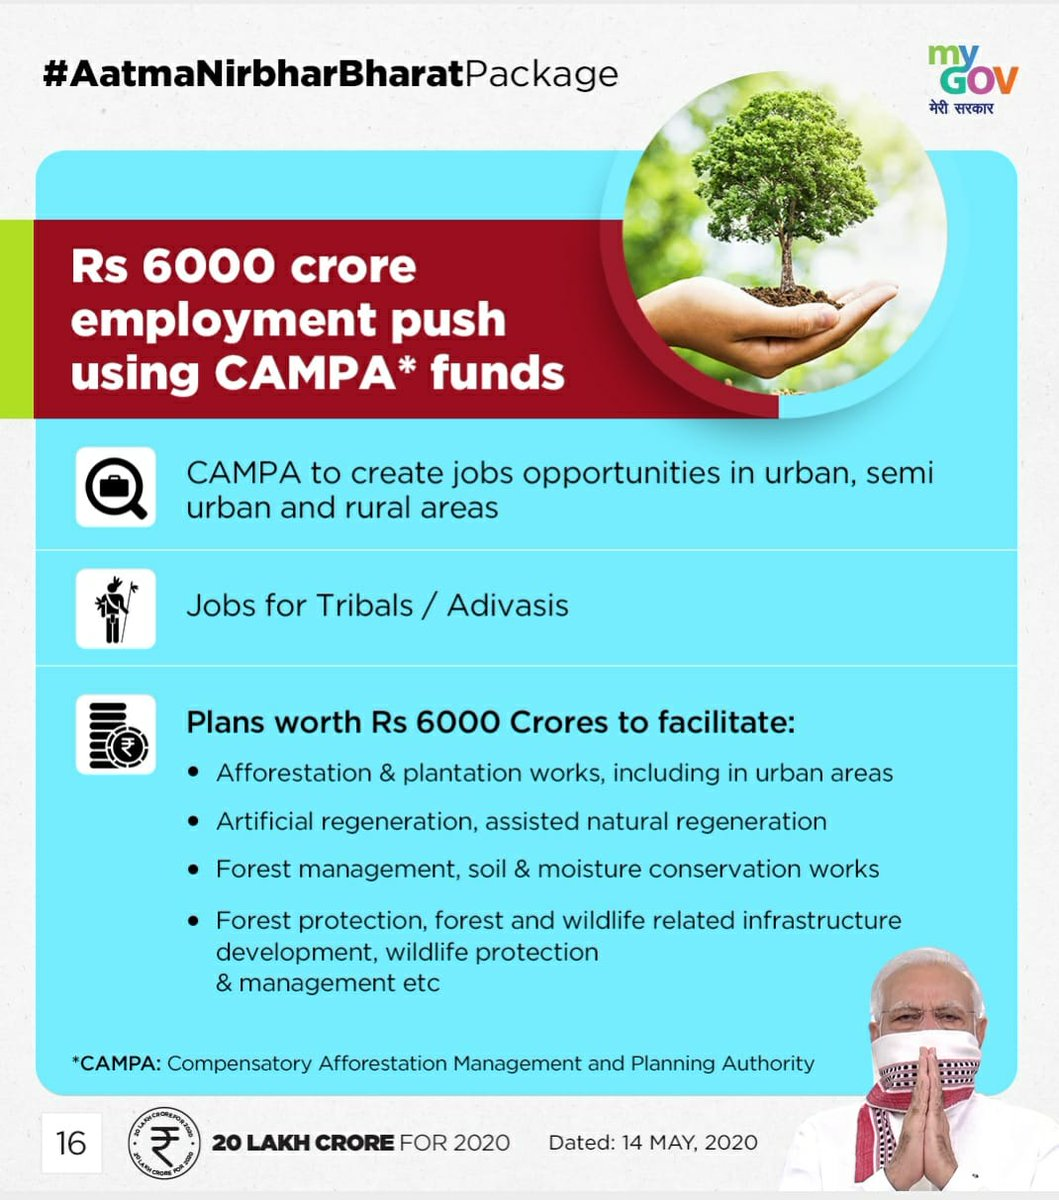 The @narendramodi Govt announced, Rs 6000 crore to be pushed using CAMPA Funds to generate employment for tribals, rural and urban areas.  This will facilitate afforestation and plantation works, Forest/Wildlife management and development.  #AatmaNirbharBharat